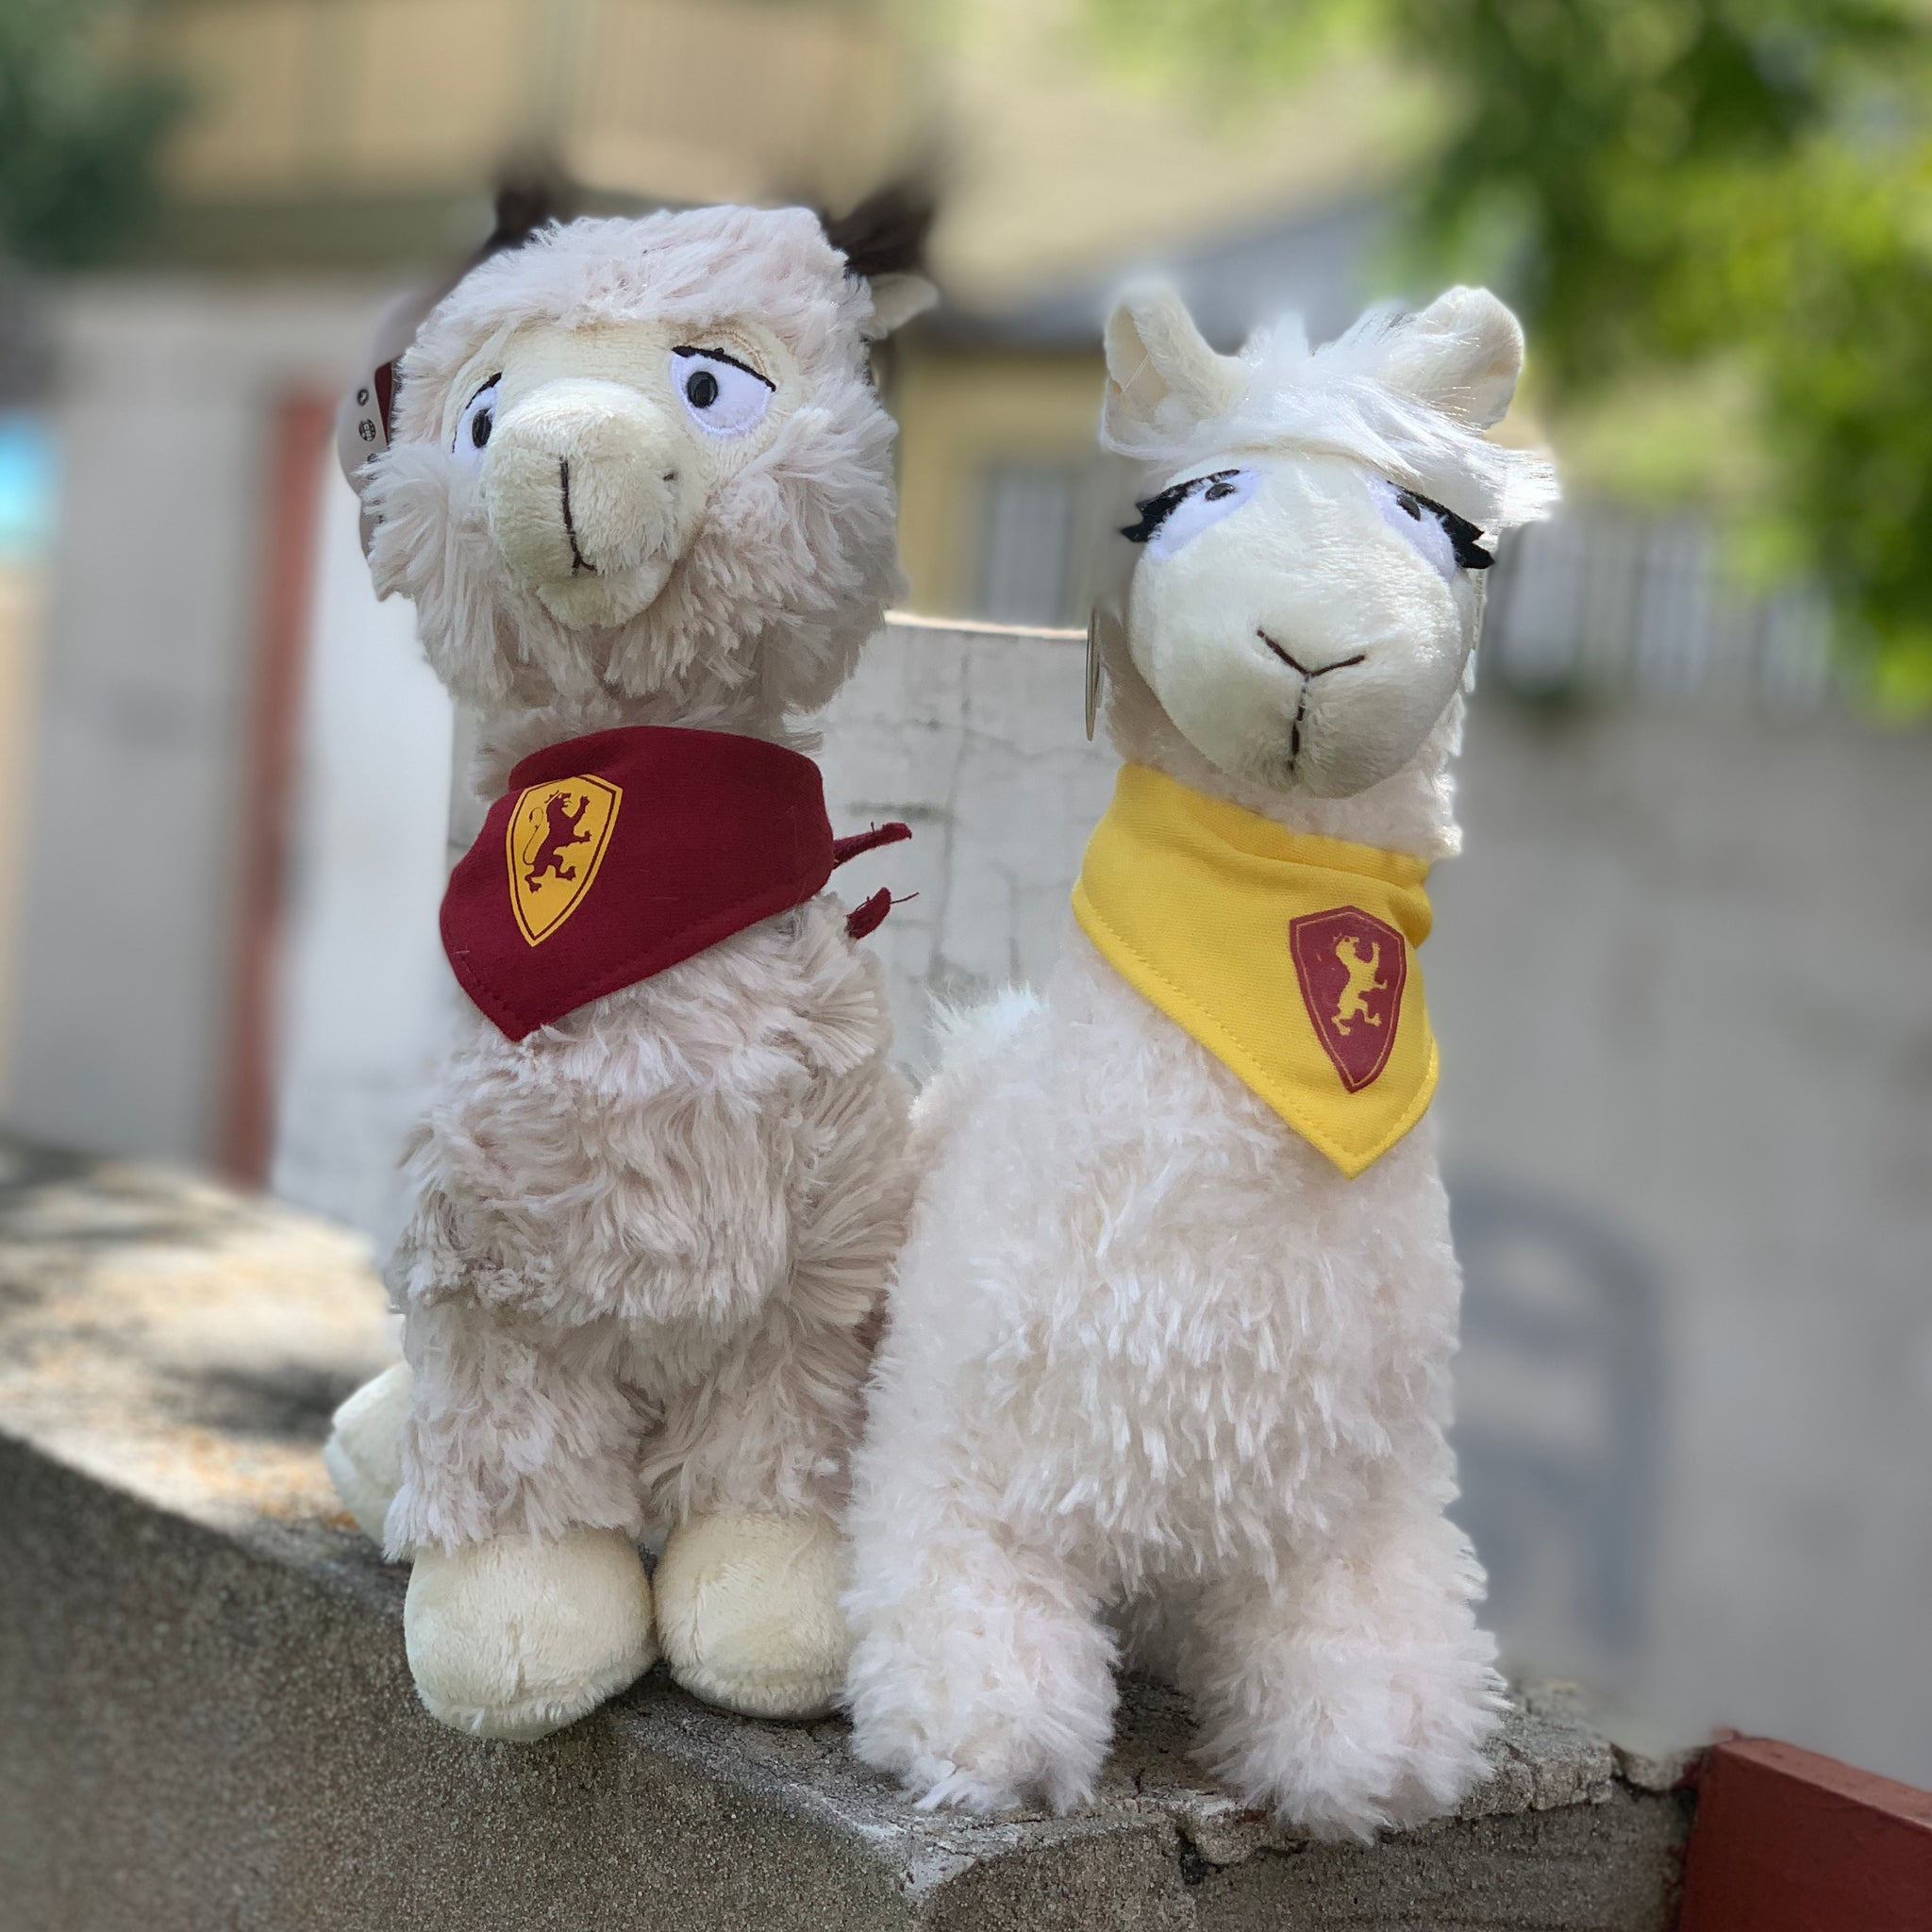 Tony and Tina Llamas